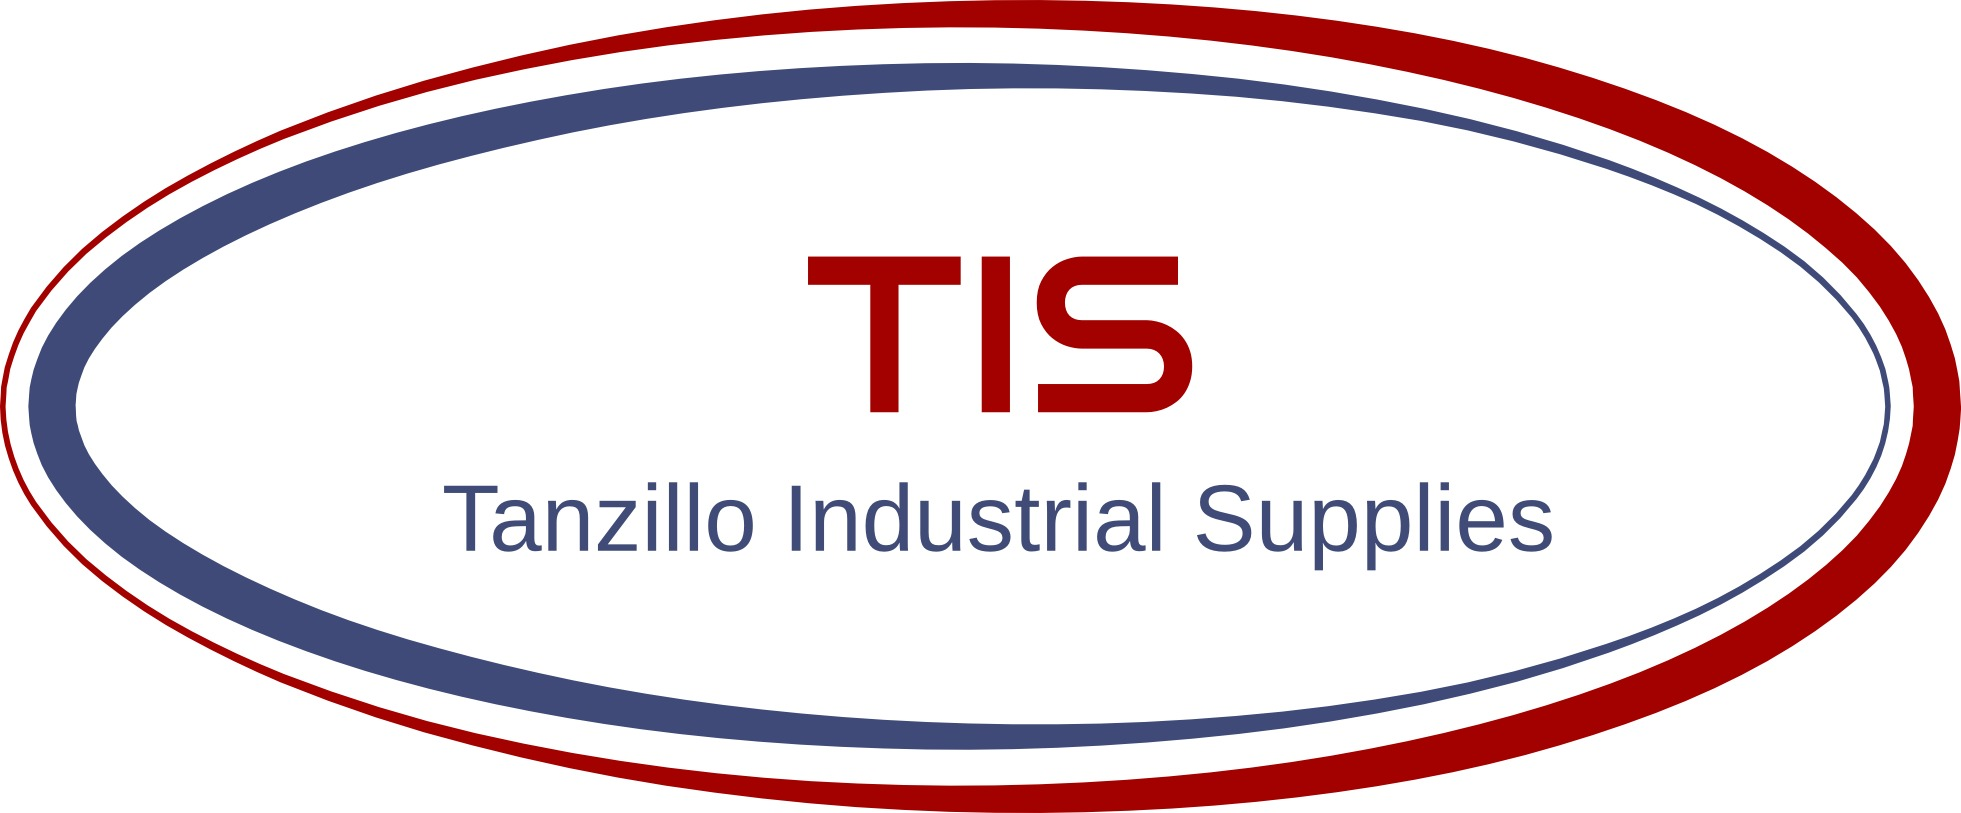 TANZILLO Industrial Supplies